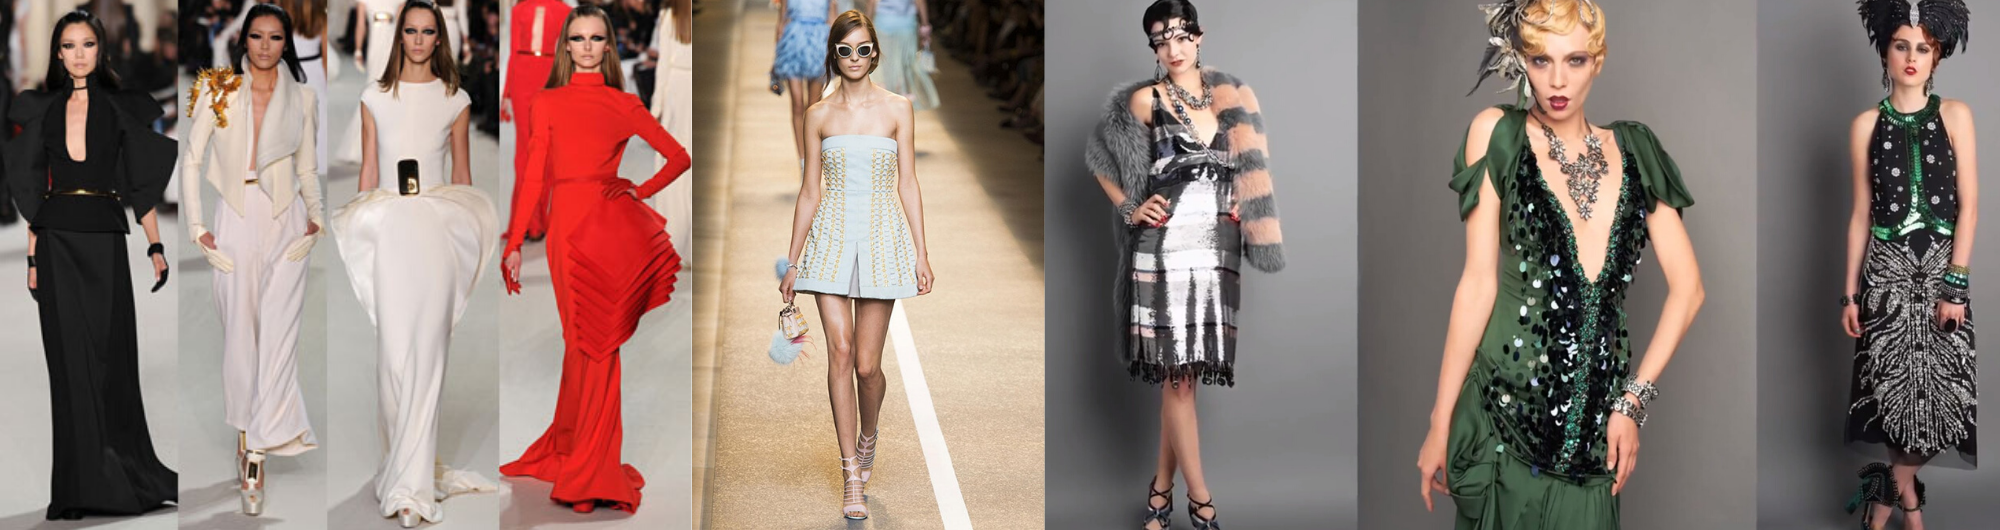 art deco style clothes - How to dress for a party?